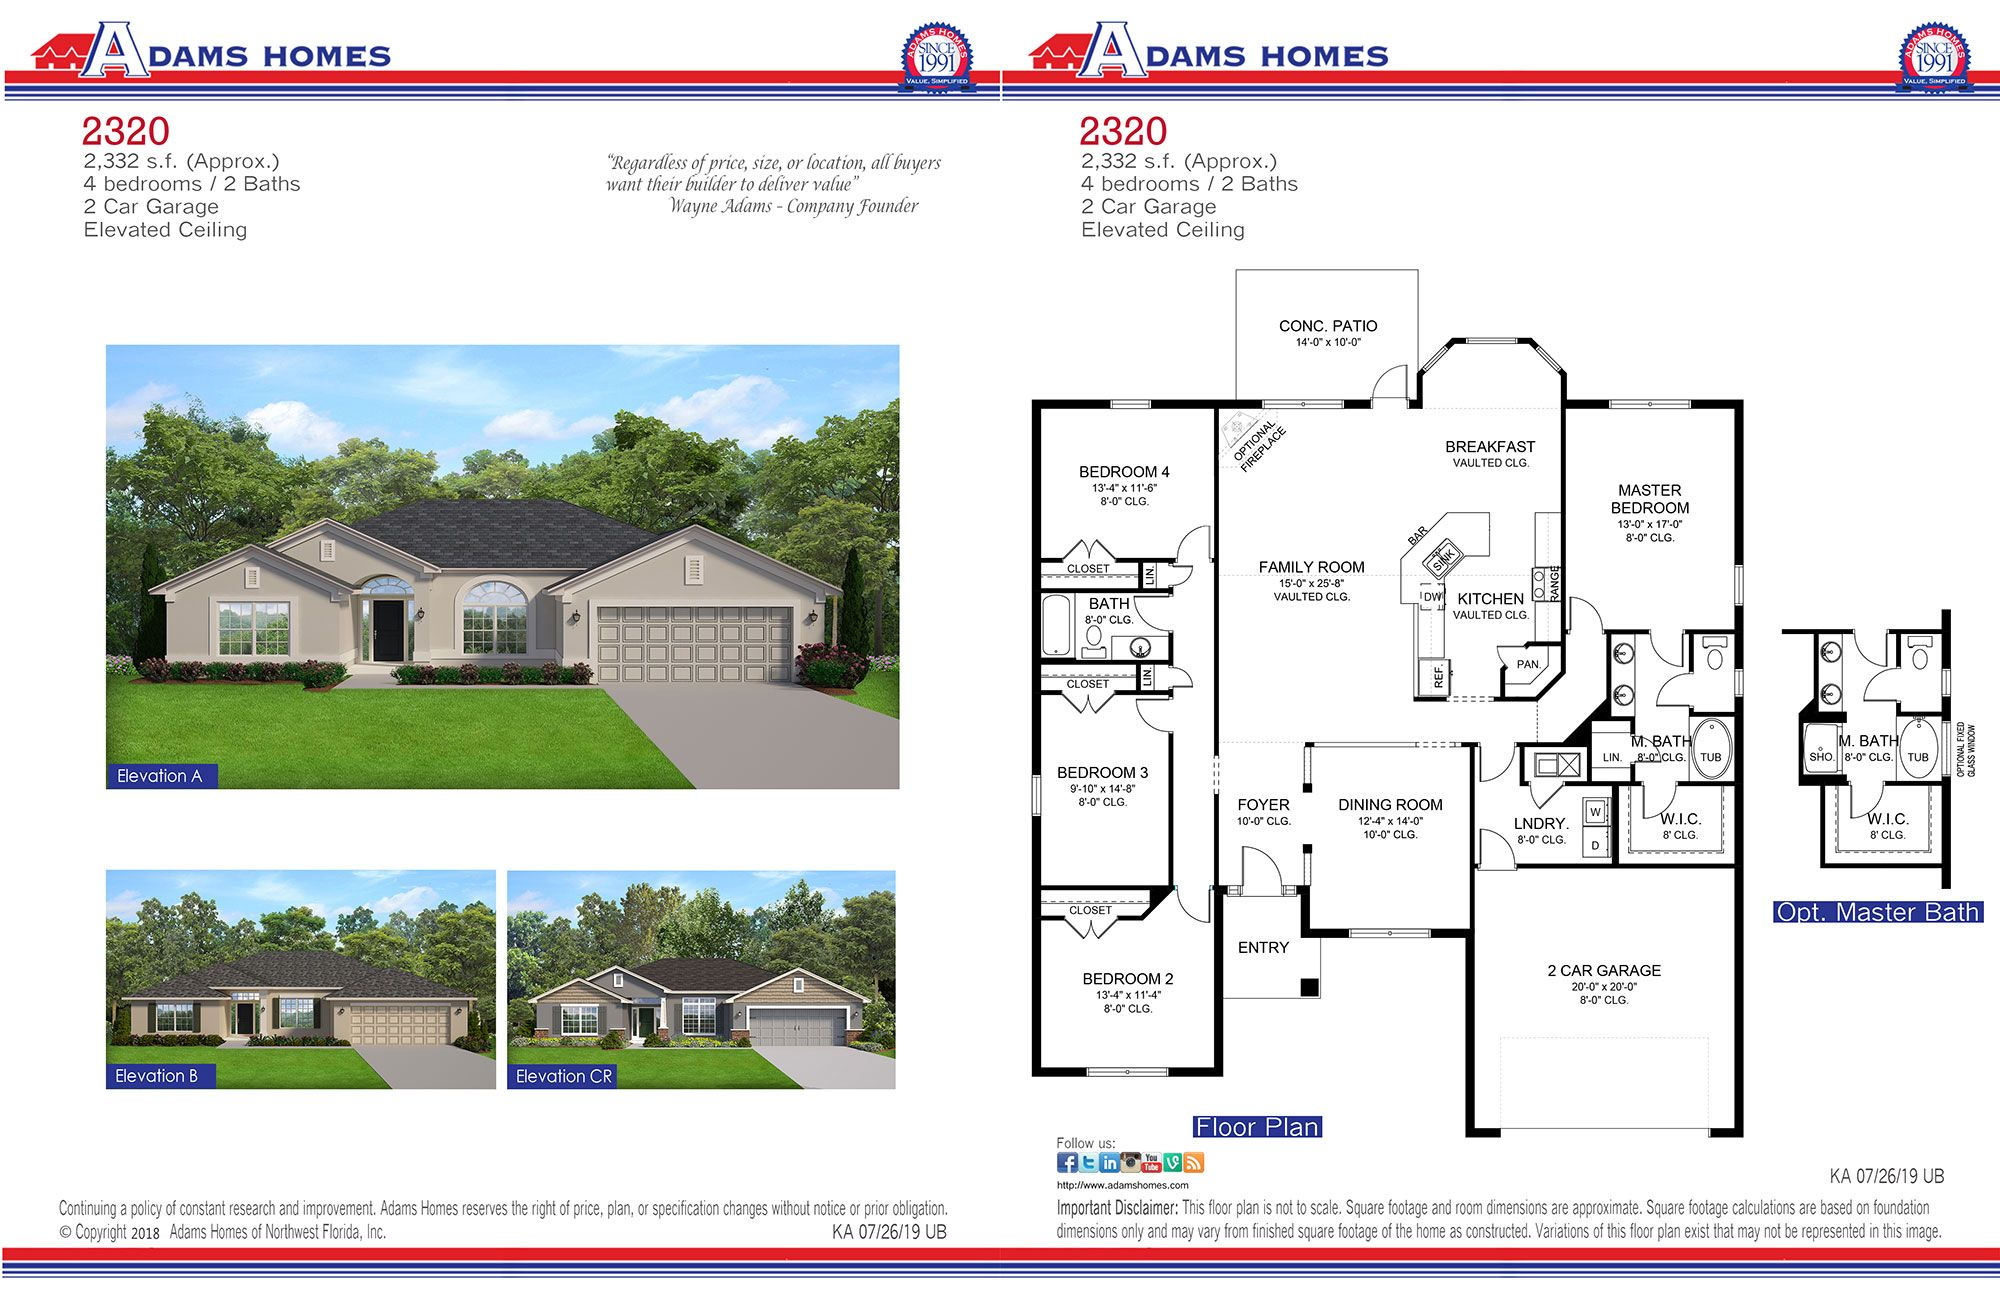 Adams Homes Hba Tampa New Home Plans In Hudson Fl Newhomesource